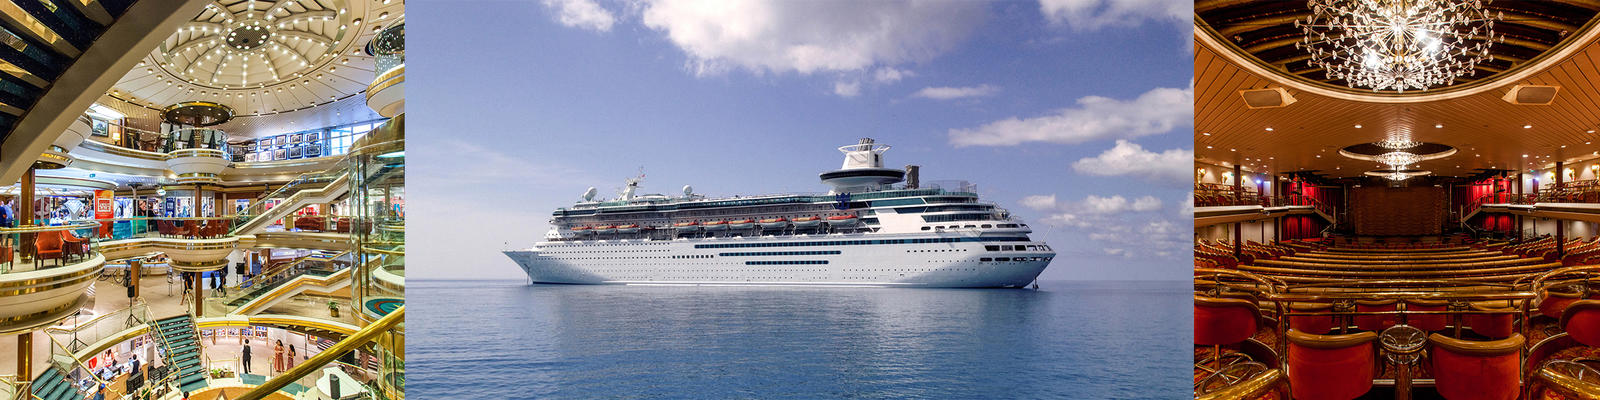 Majesty Of The Seas Cruise Ship Review Photos